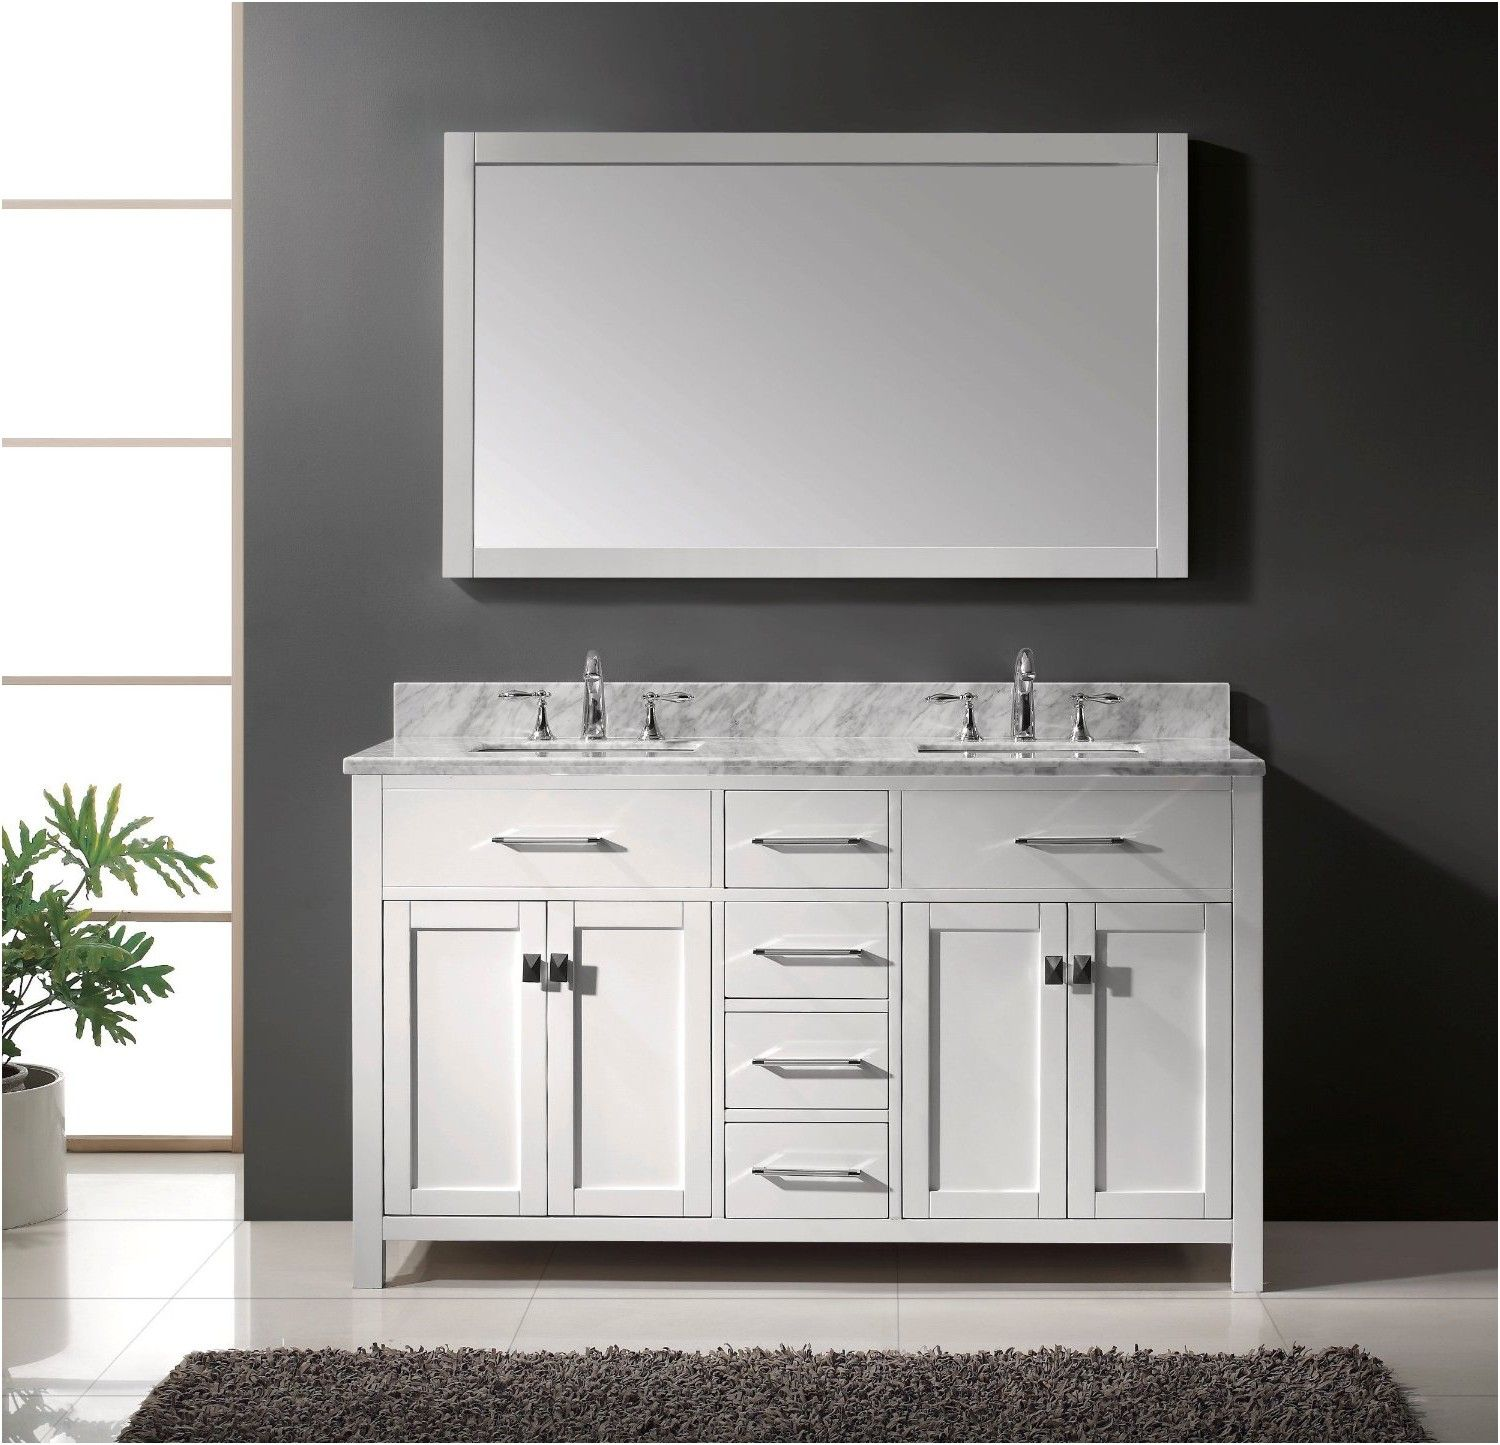 countertop ideas sheffield white bathroom double inch neoteric sink bold vanity